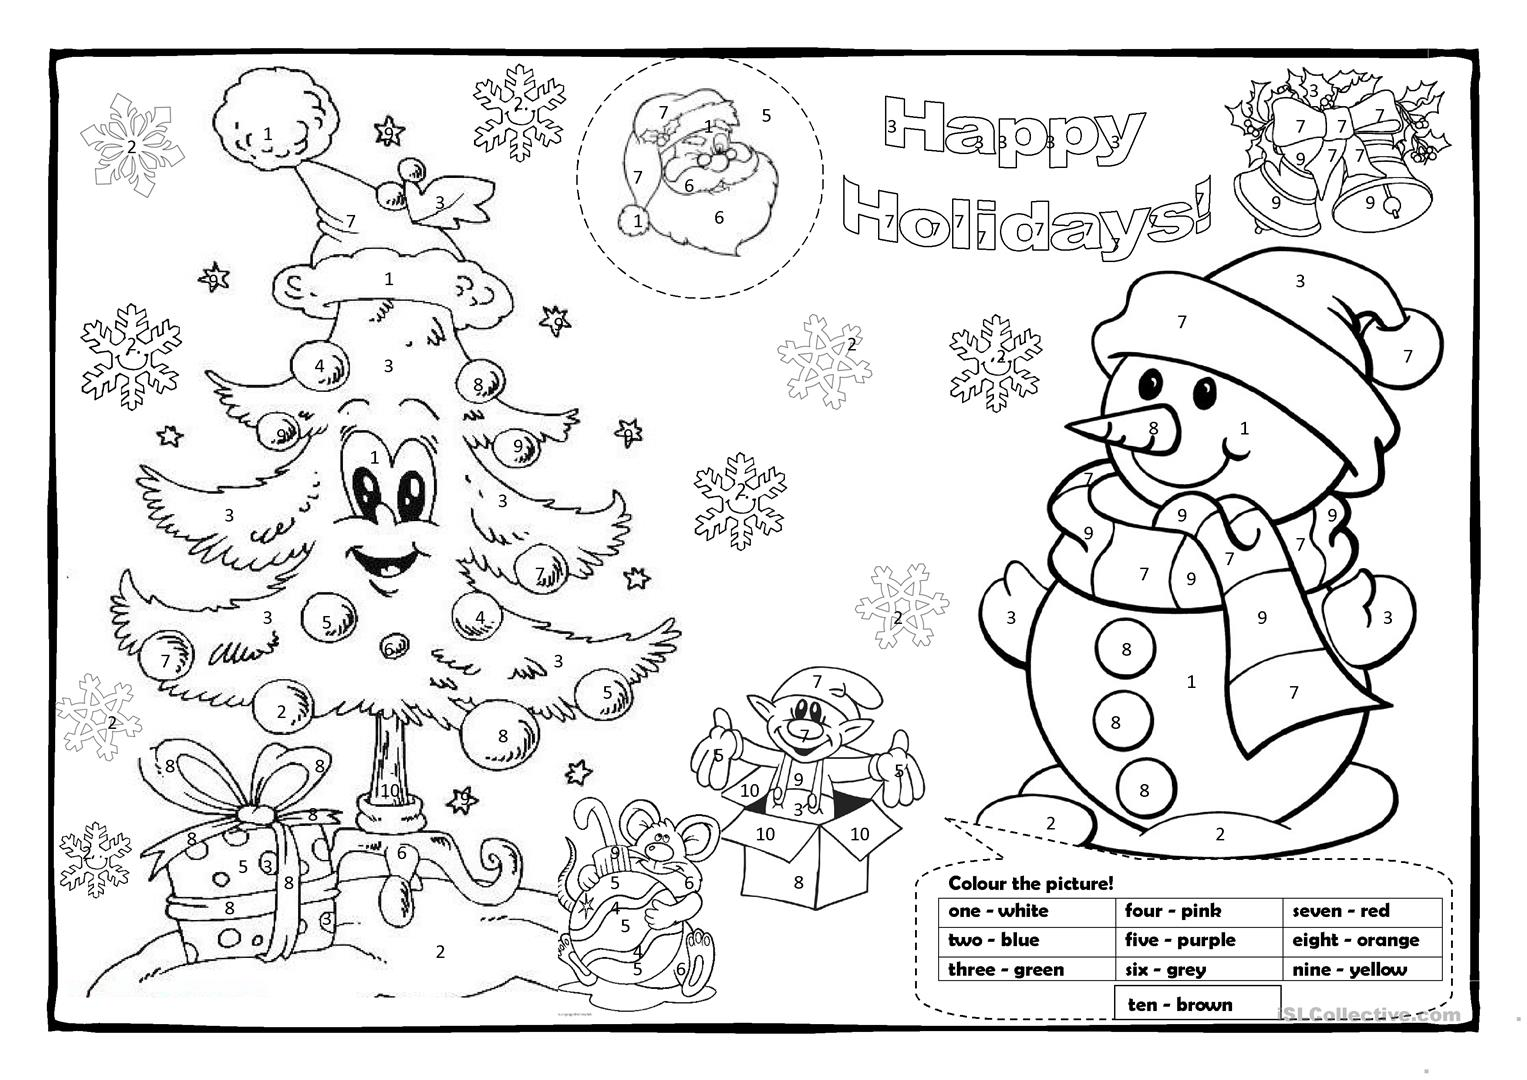 Yuletide Pages Of A Black And White Coloring Pages